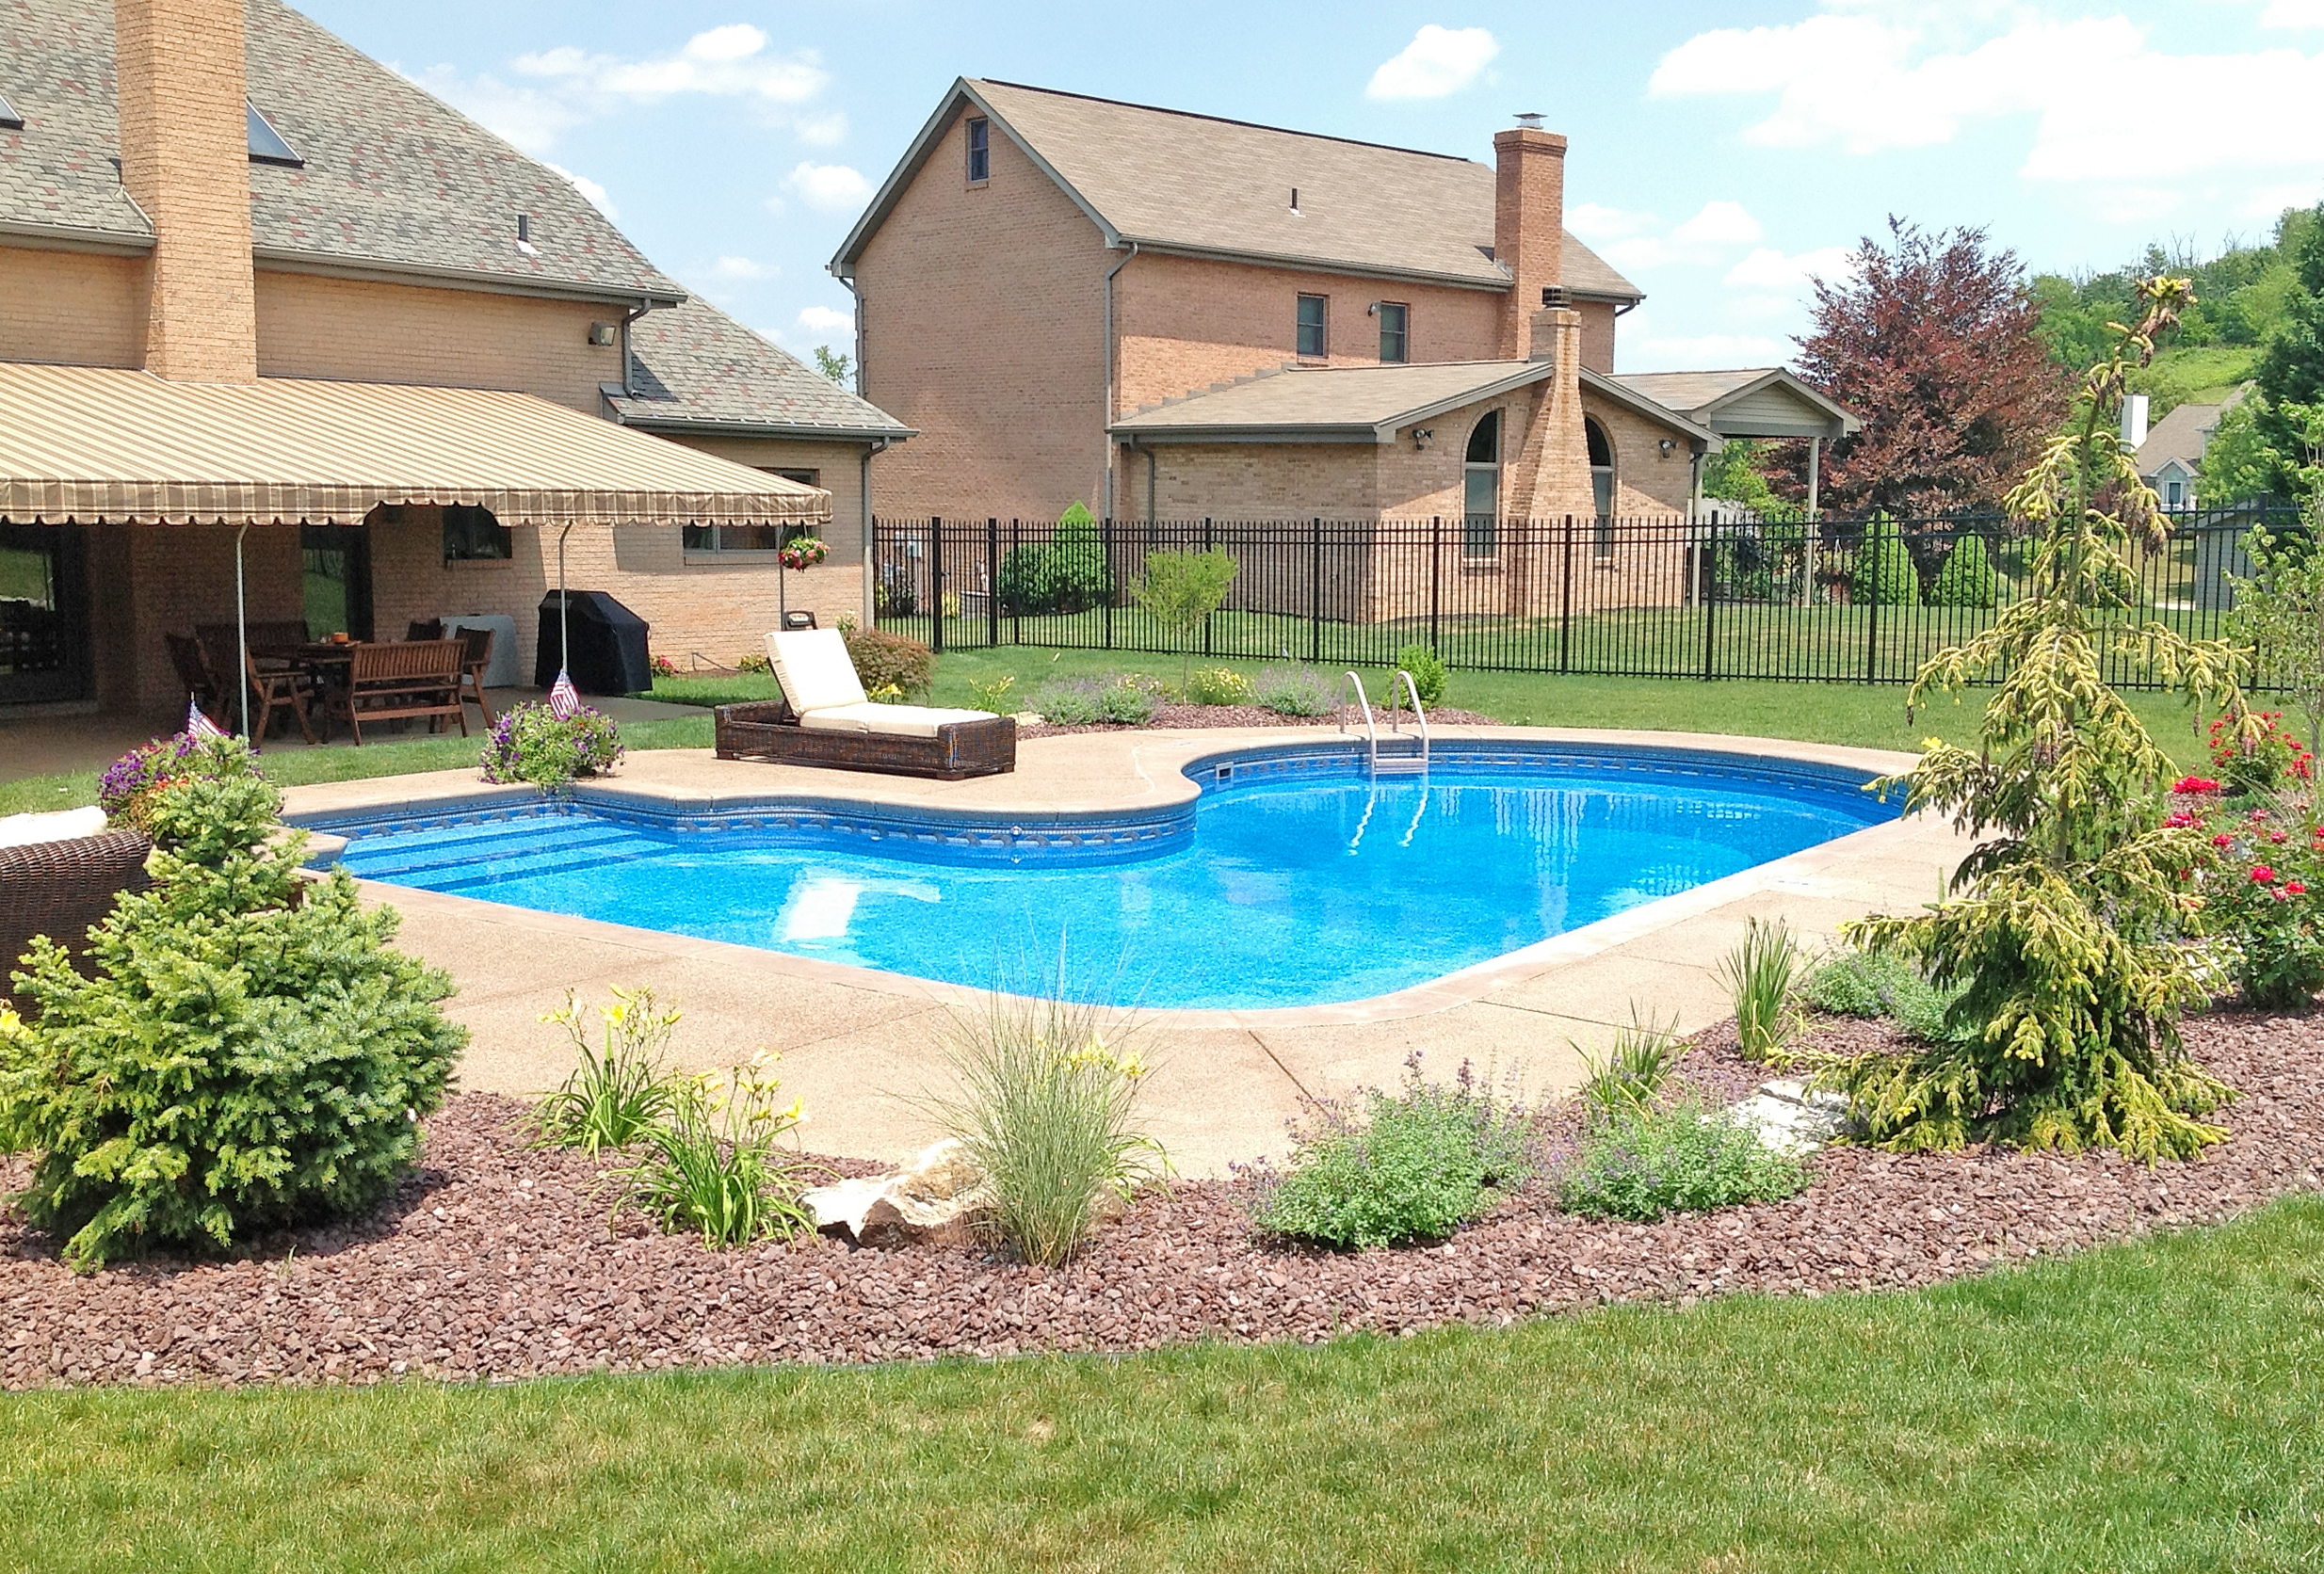 Gallery for Pool design 2015